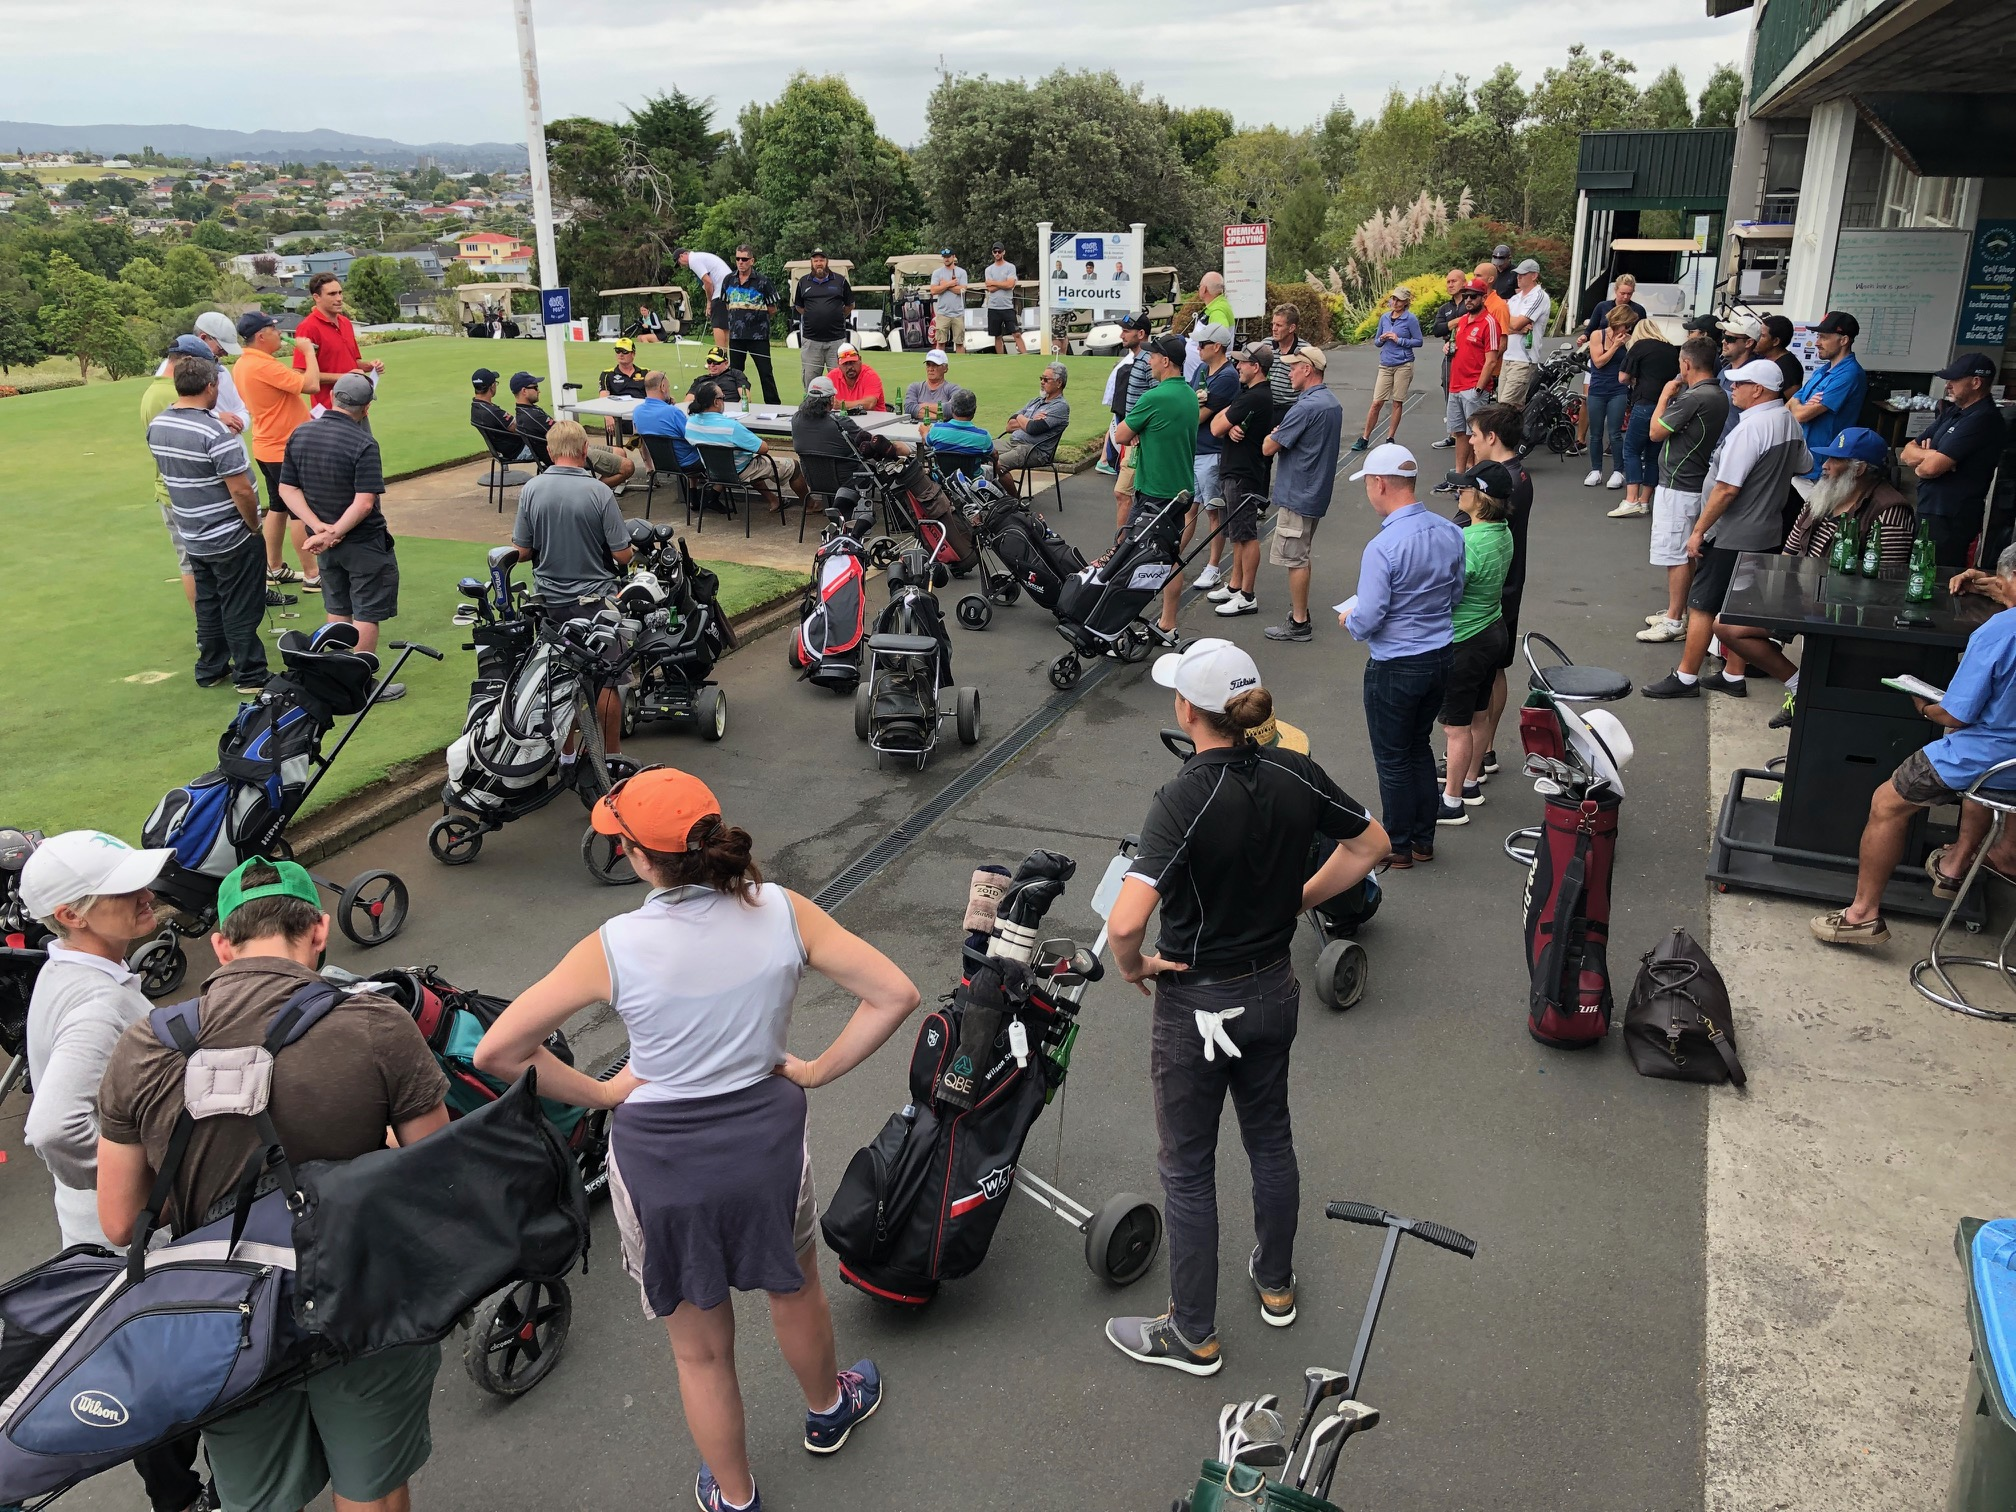 Supporters take to the course for a round to benefit the local community.